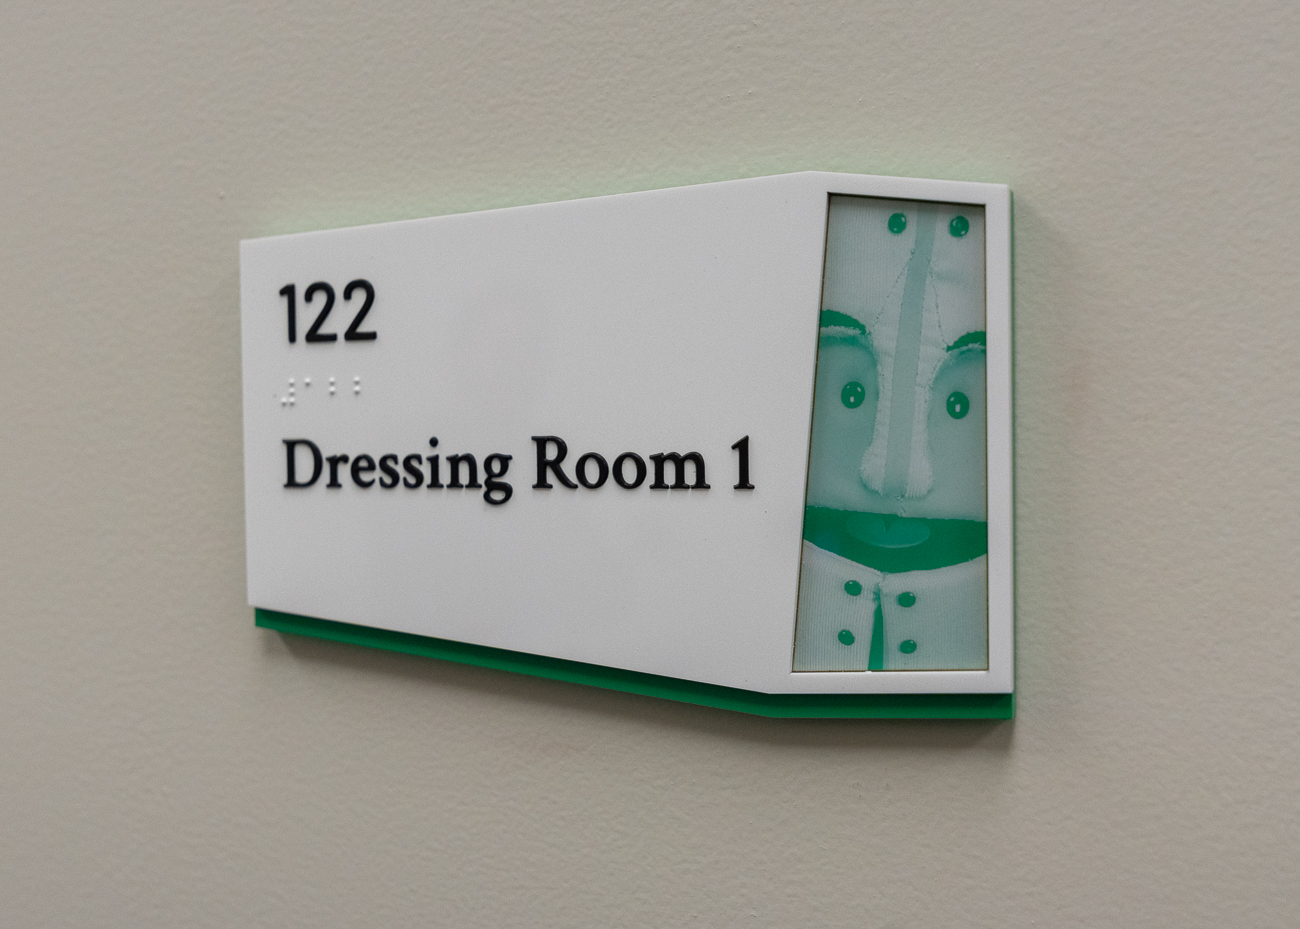 An image of the previous slide's puppet is used in the graphic for a room label. All rooms in the Madcap Education Center feature different puppets on their labels. / Image: Phil Armstrong, Cincinnati Refined // Published: 1.26.19